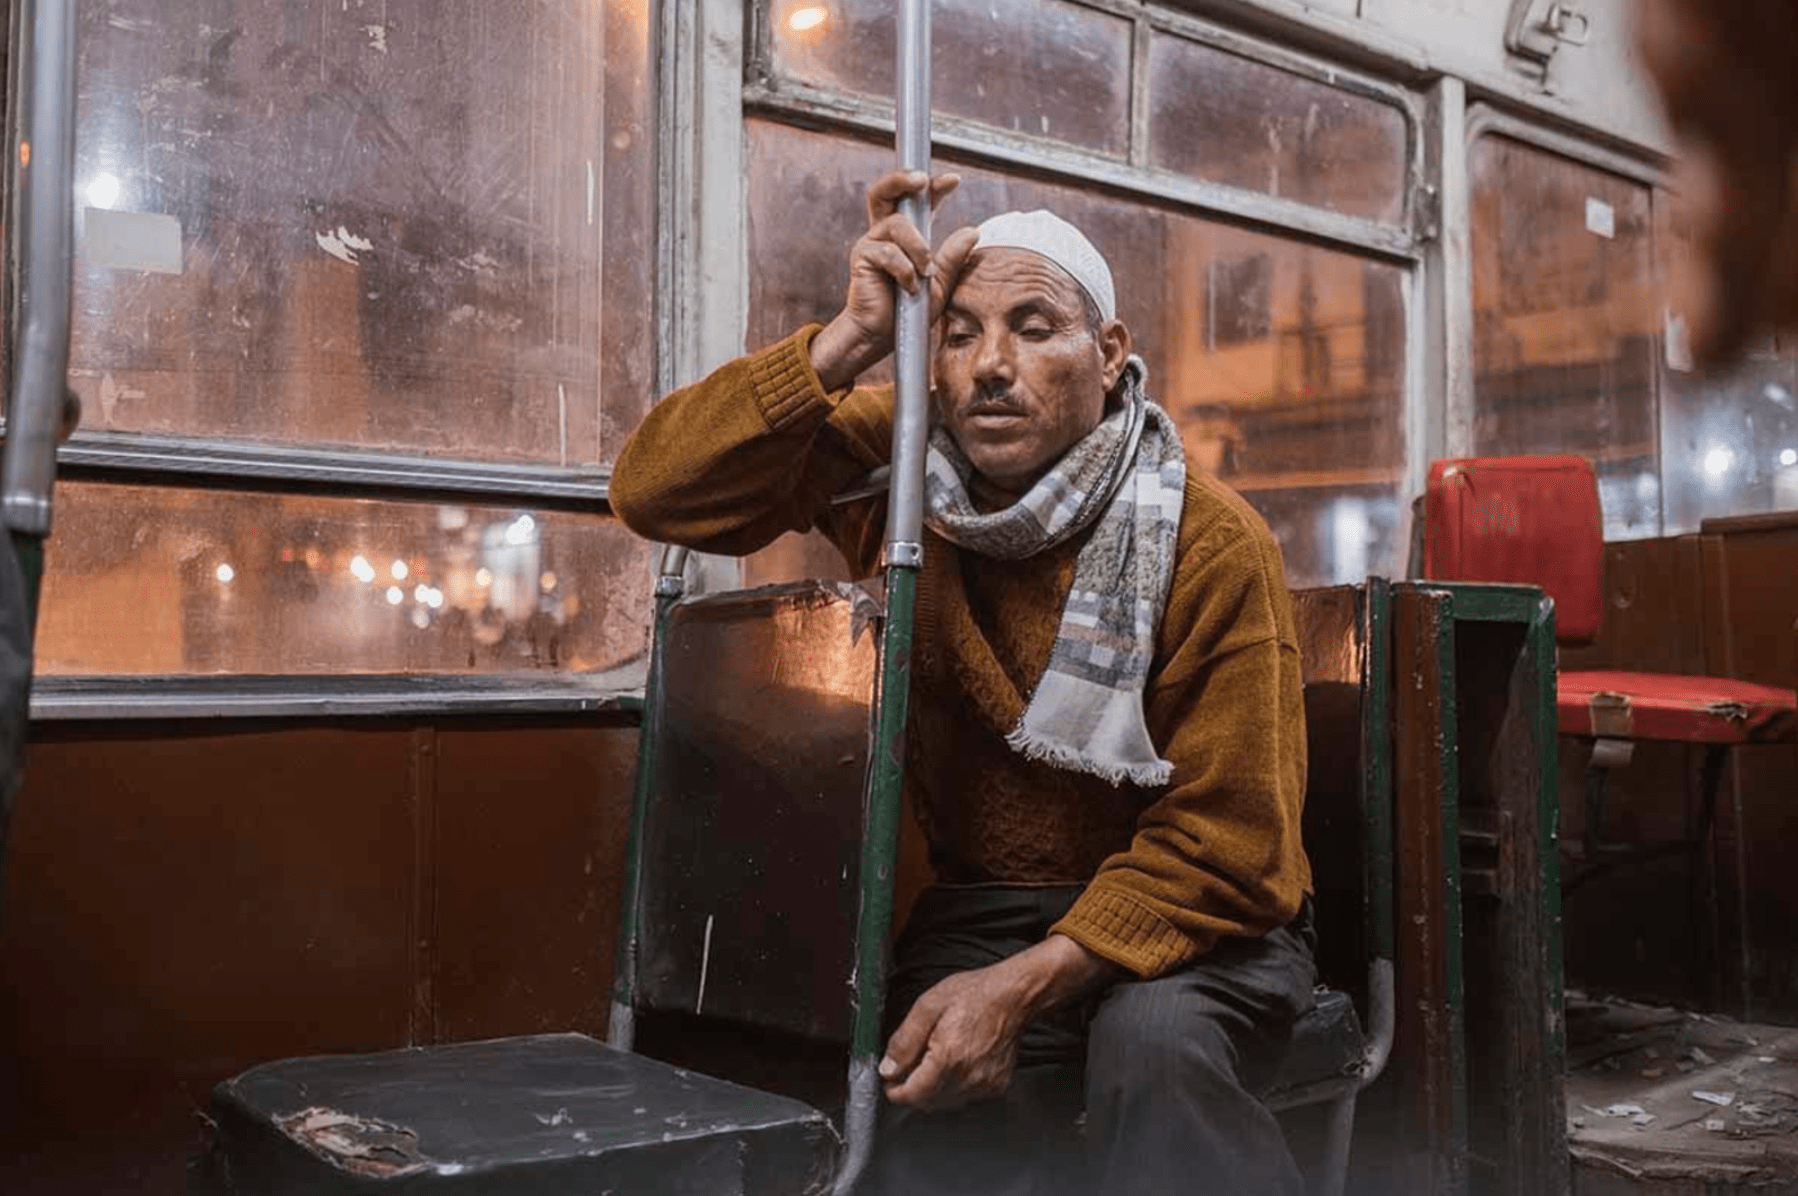 Fatma Fahmy: Once There Was a Tram